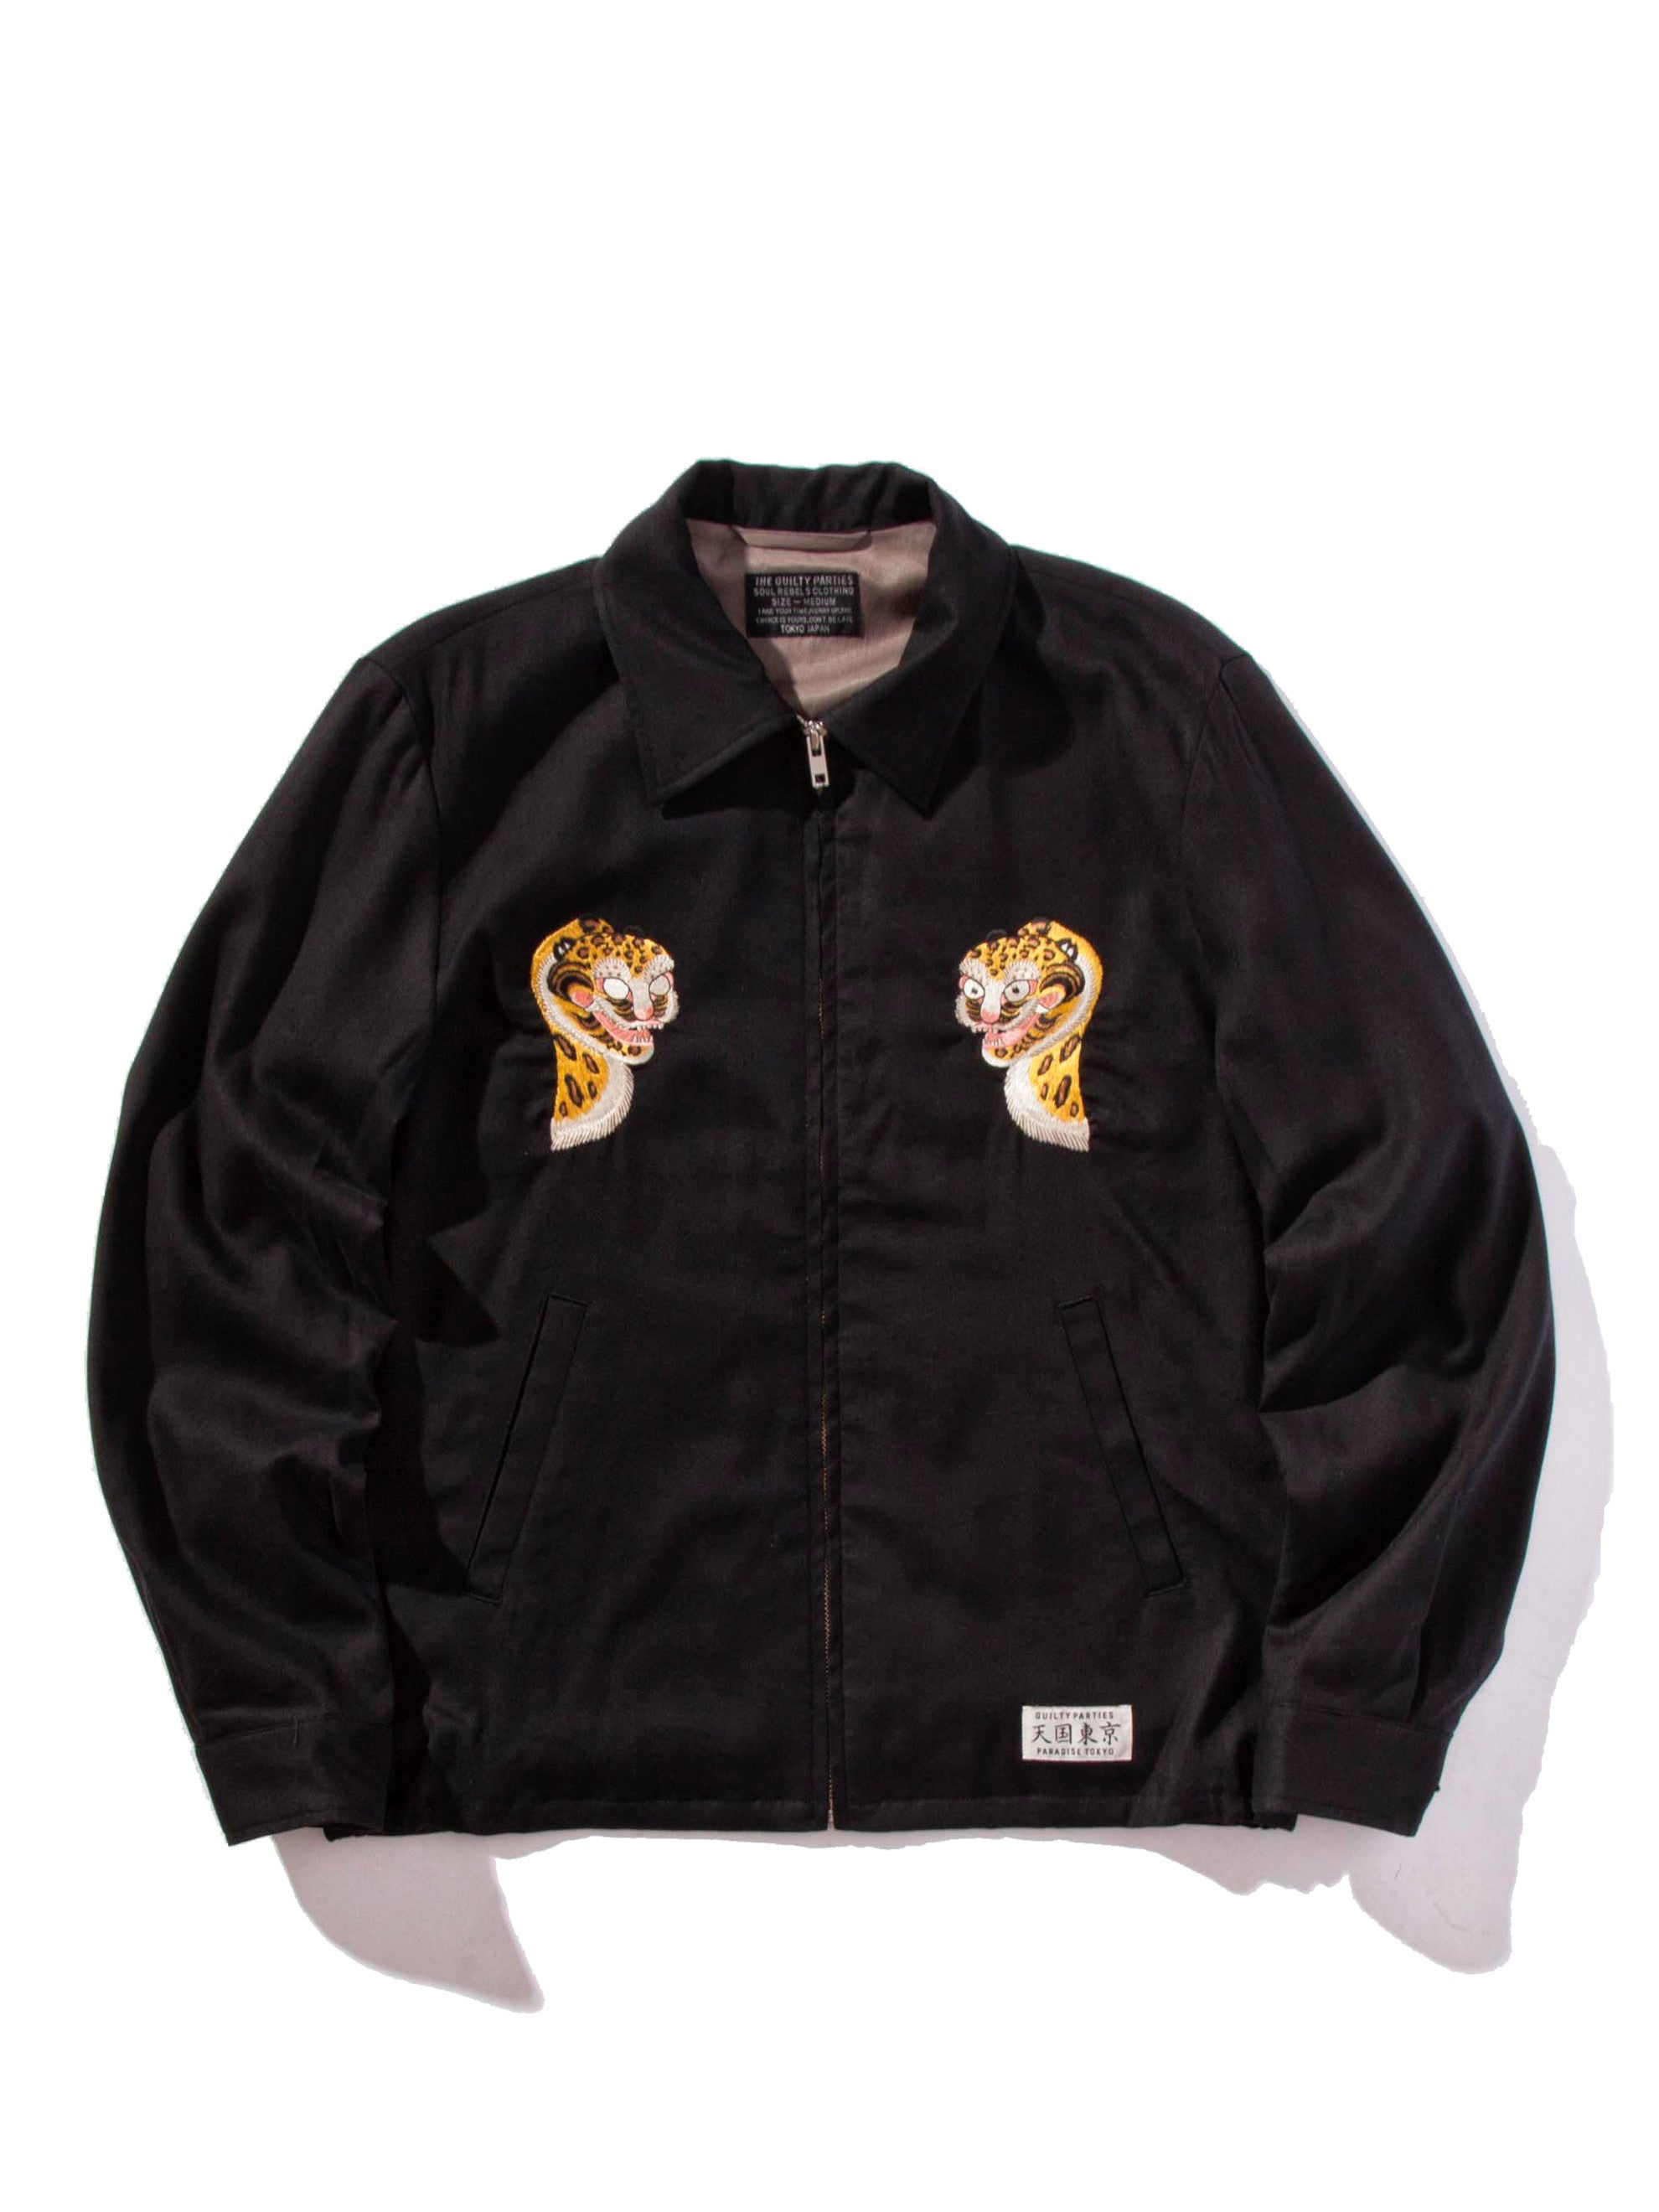 Black Vietnam Jacket 6